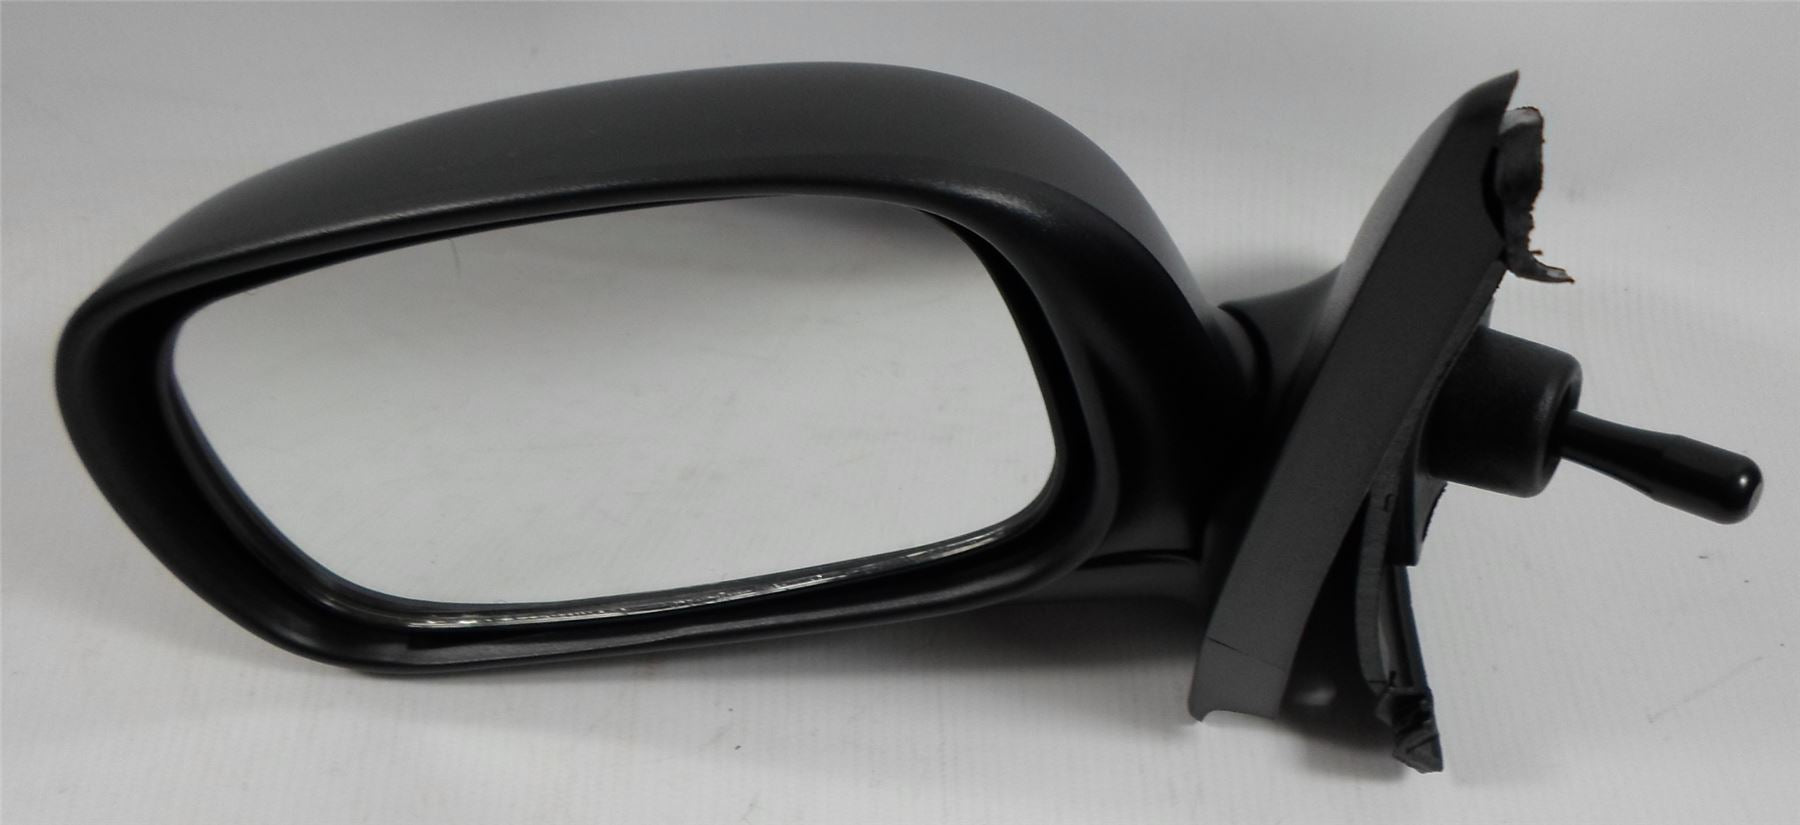 Nissan Micra Mk2 1993-6/2003 Cable Wing Mirror Black Textured Passenger Side N/S